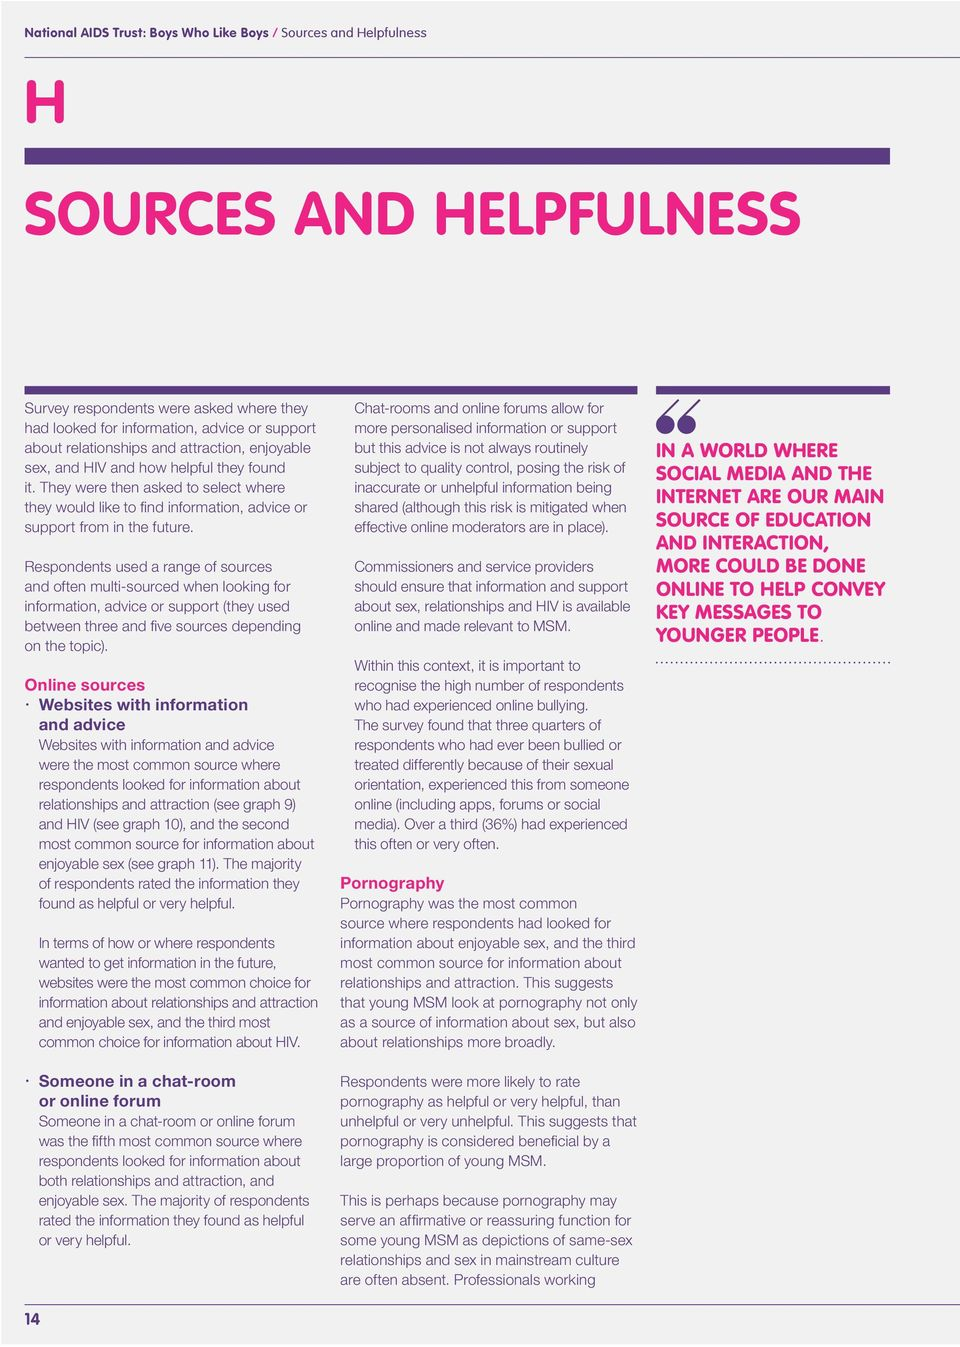 Respondents used a range of sources and often multi-sourced when looking for information, advice or support (they used between three and five sources depending on the topic).